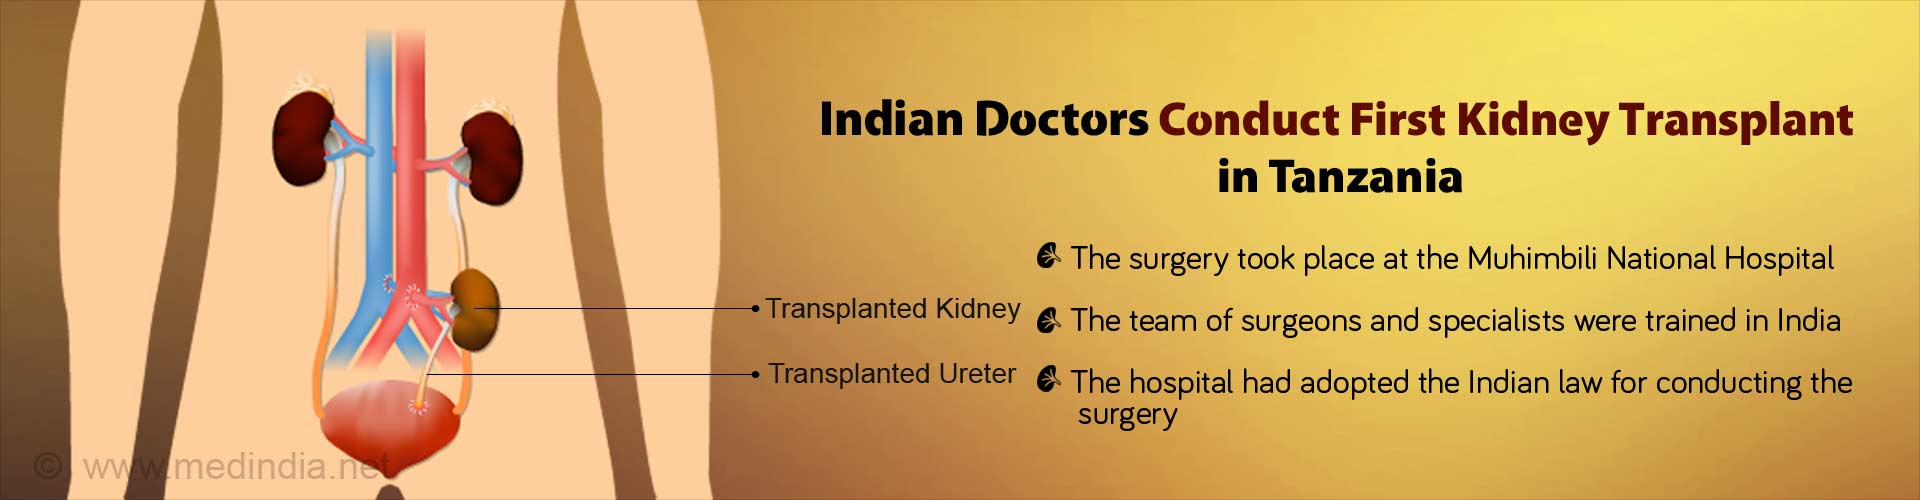 First Kidney Transplant in Tanzania By Indian Doctors